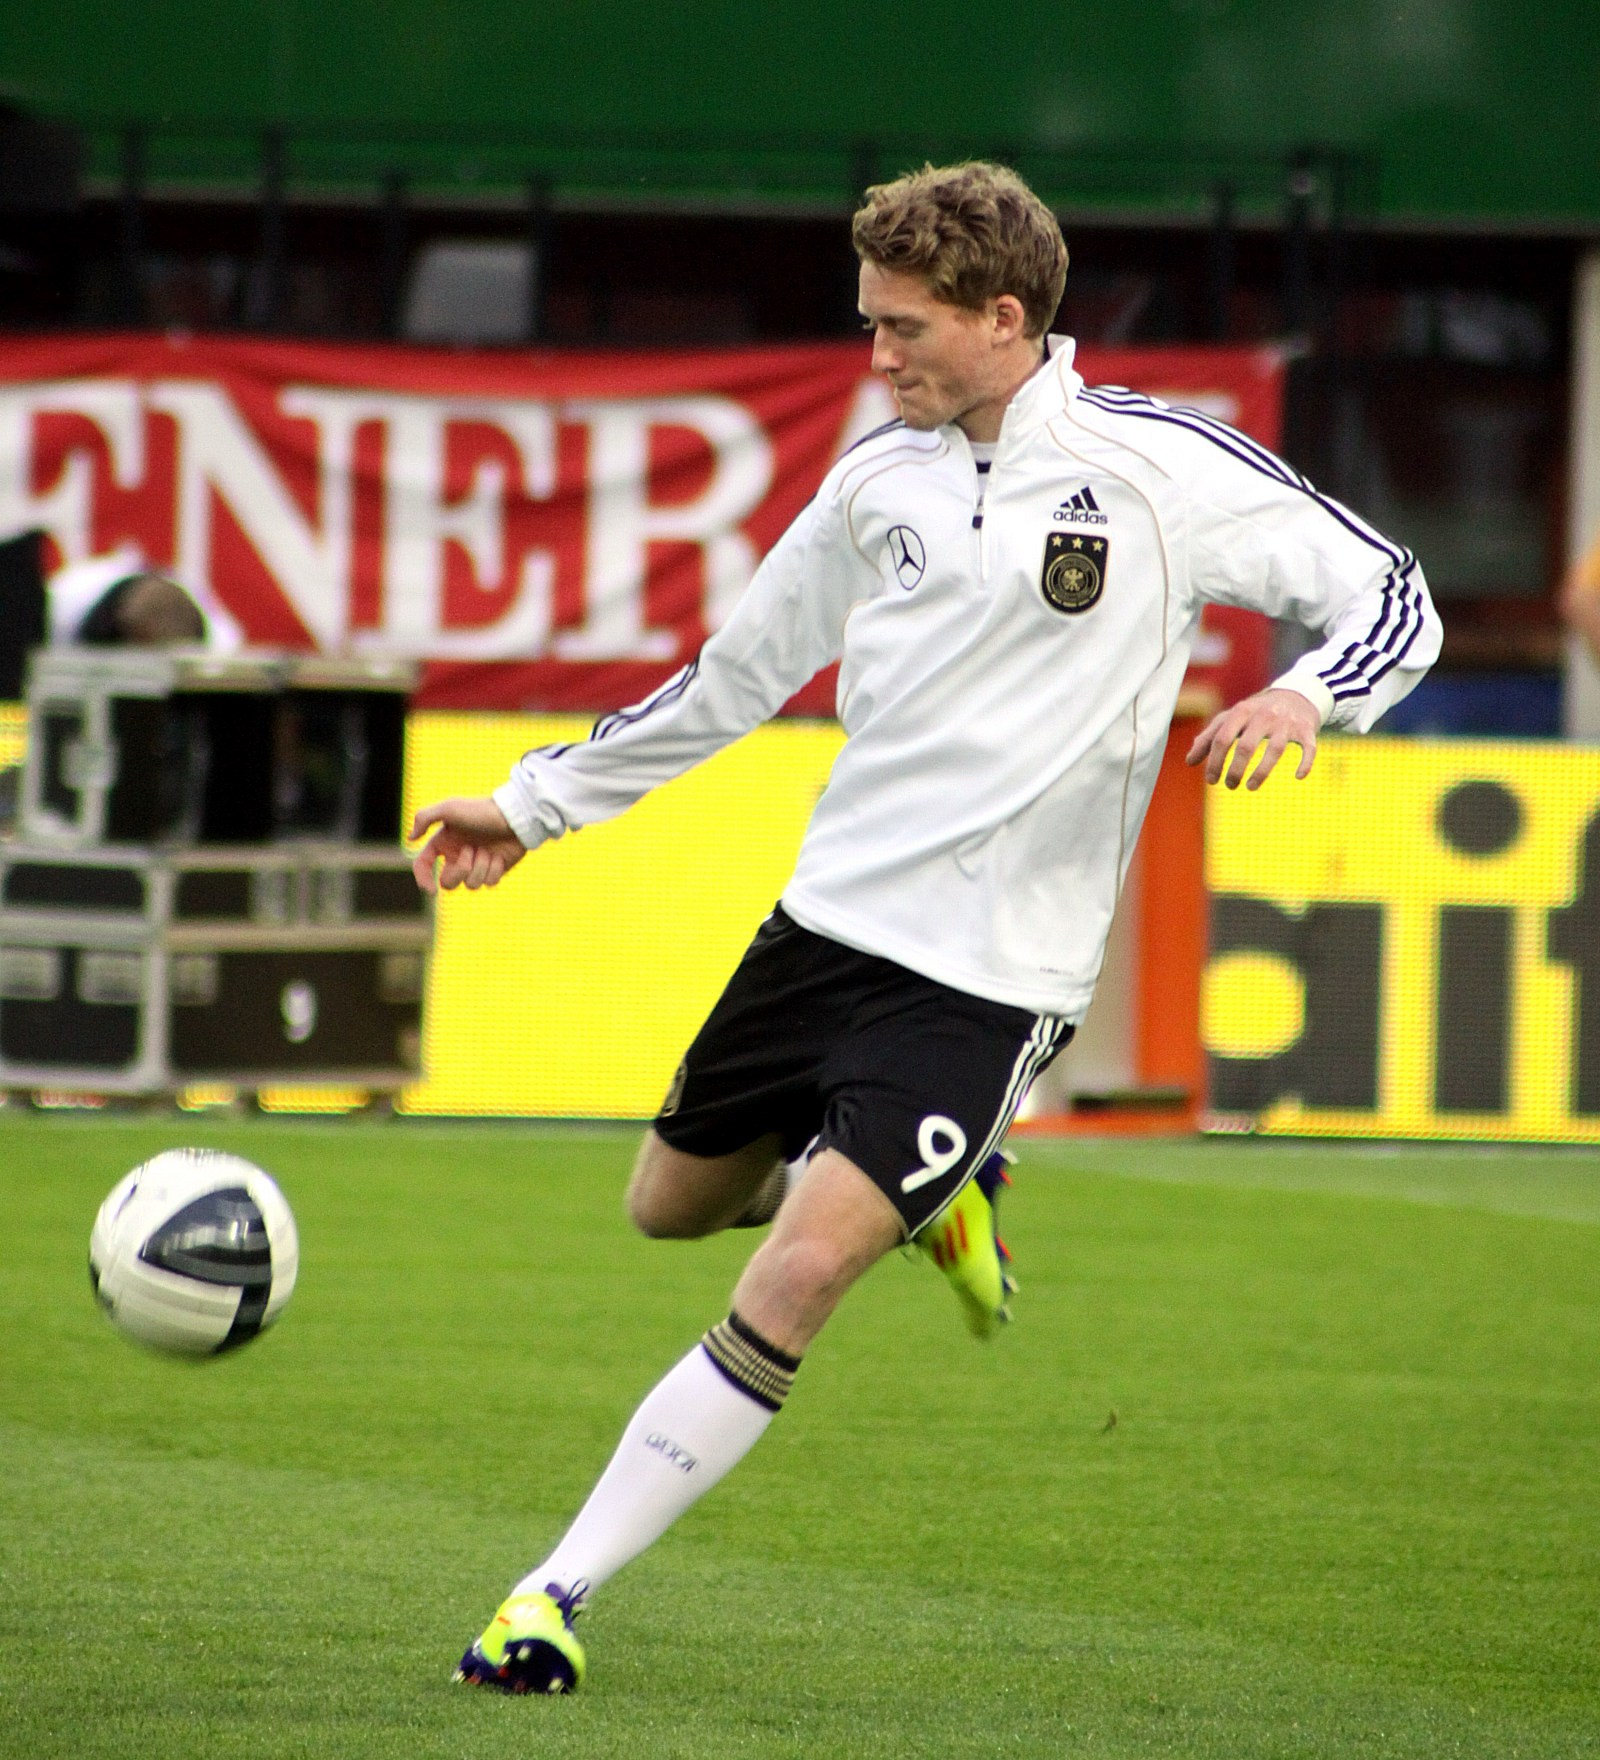 Description andre schürrle germany national football team 01